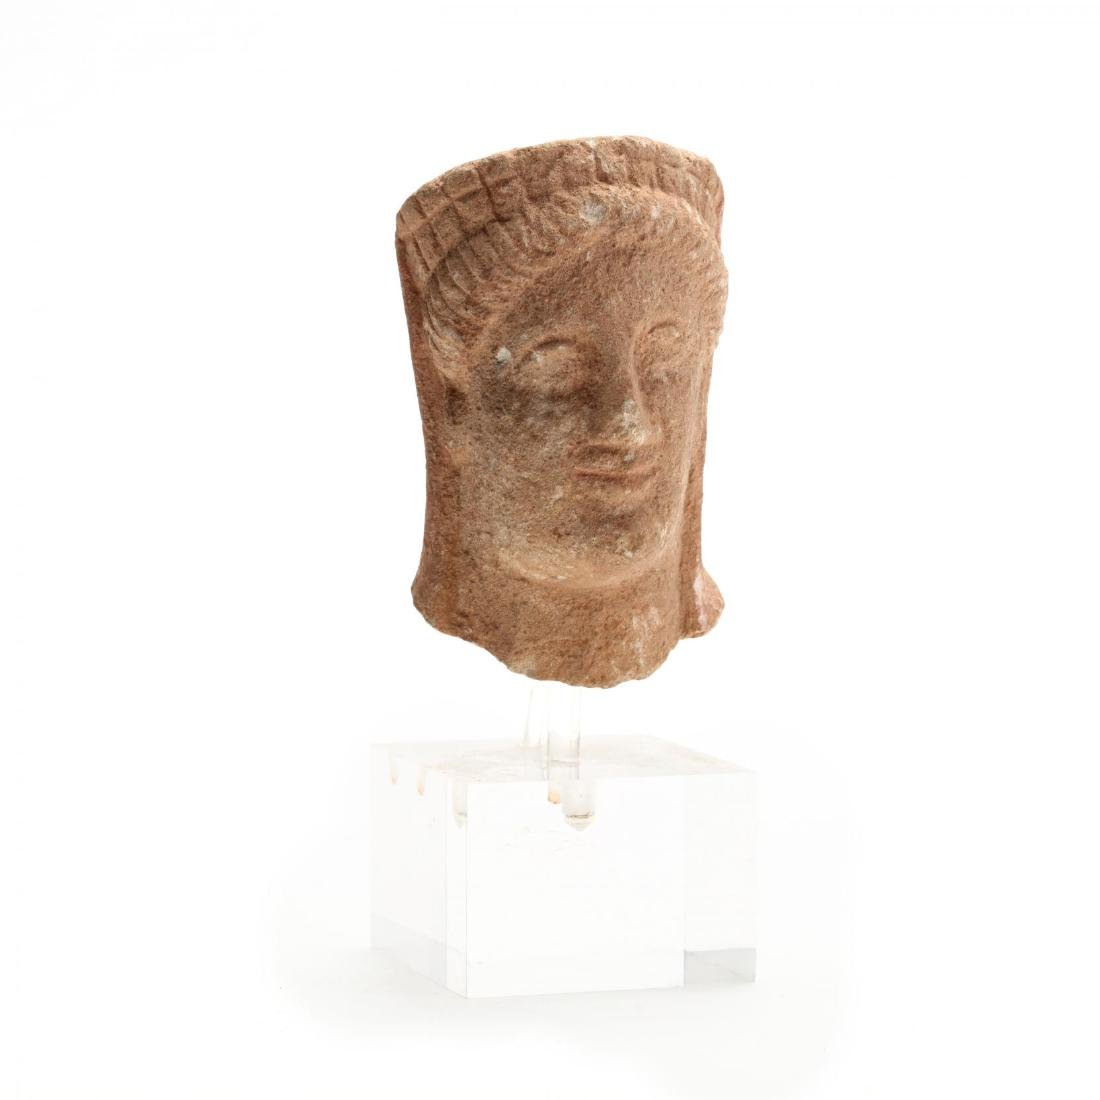 Cypriot Limestone Head of a Woman